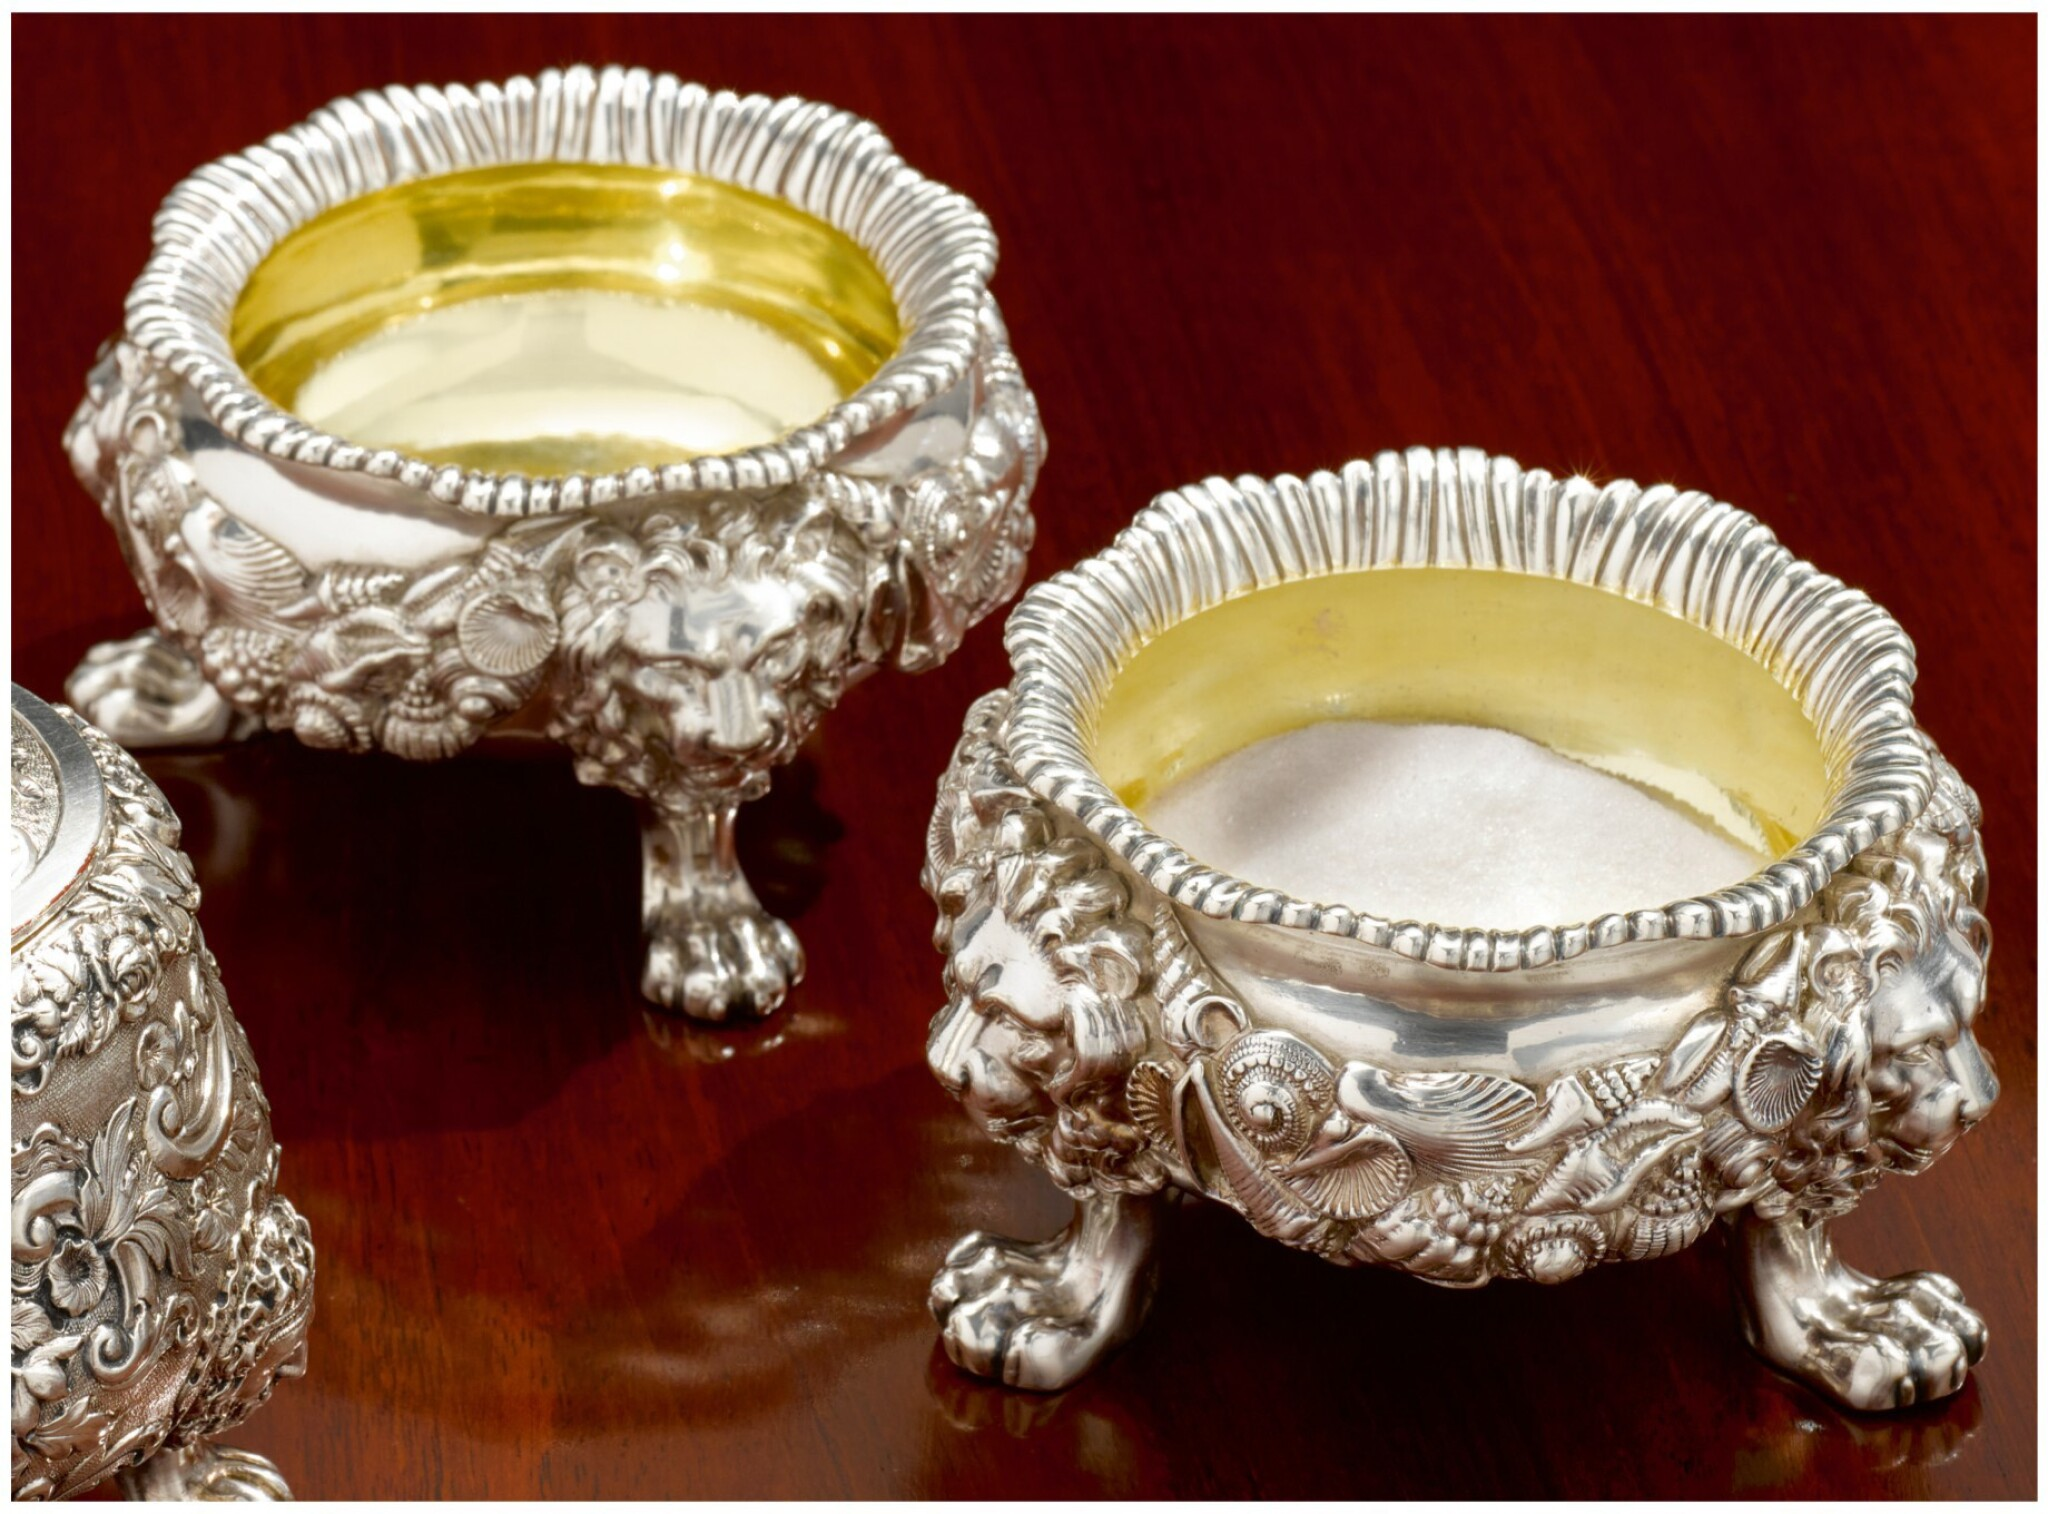 View full screen - View 1 of Lot 20. A PAIR OF GEORGE IV SILVER SALTS, PAUL STORR, LONDON, 1821-22.